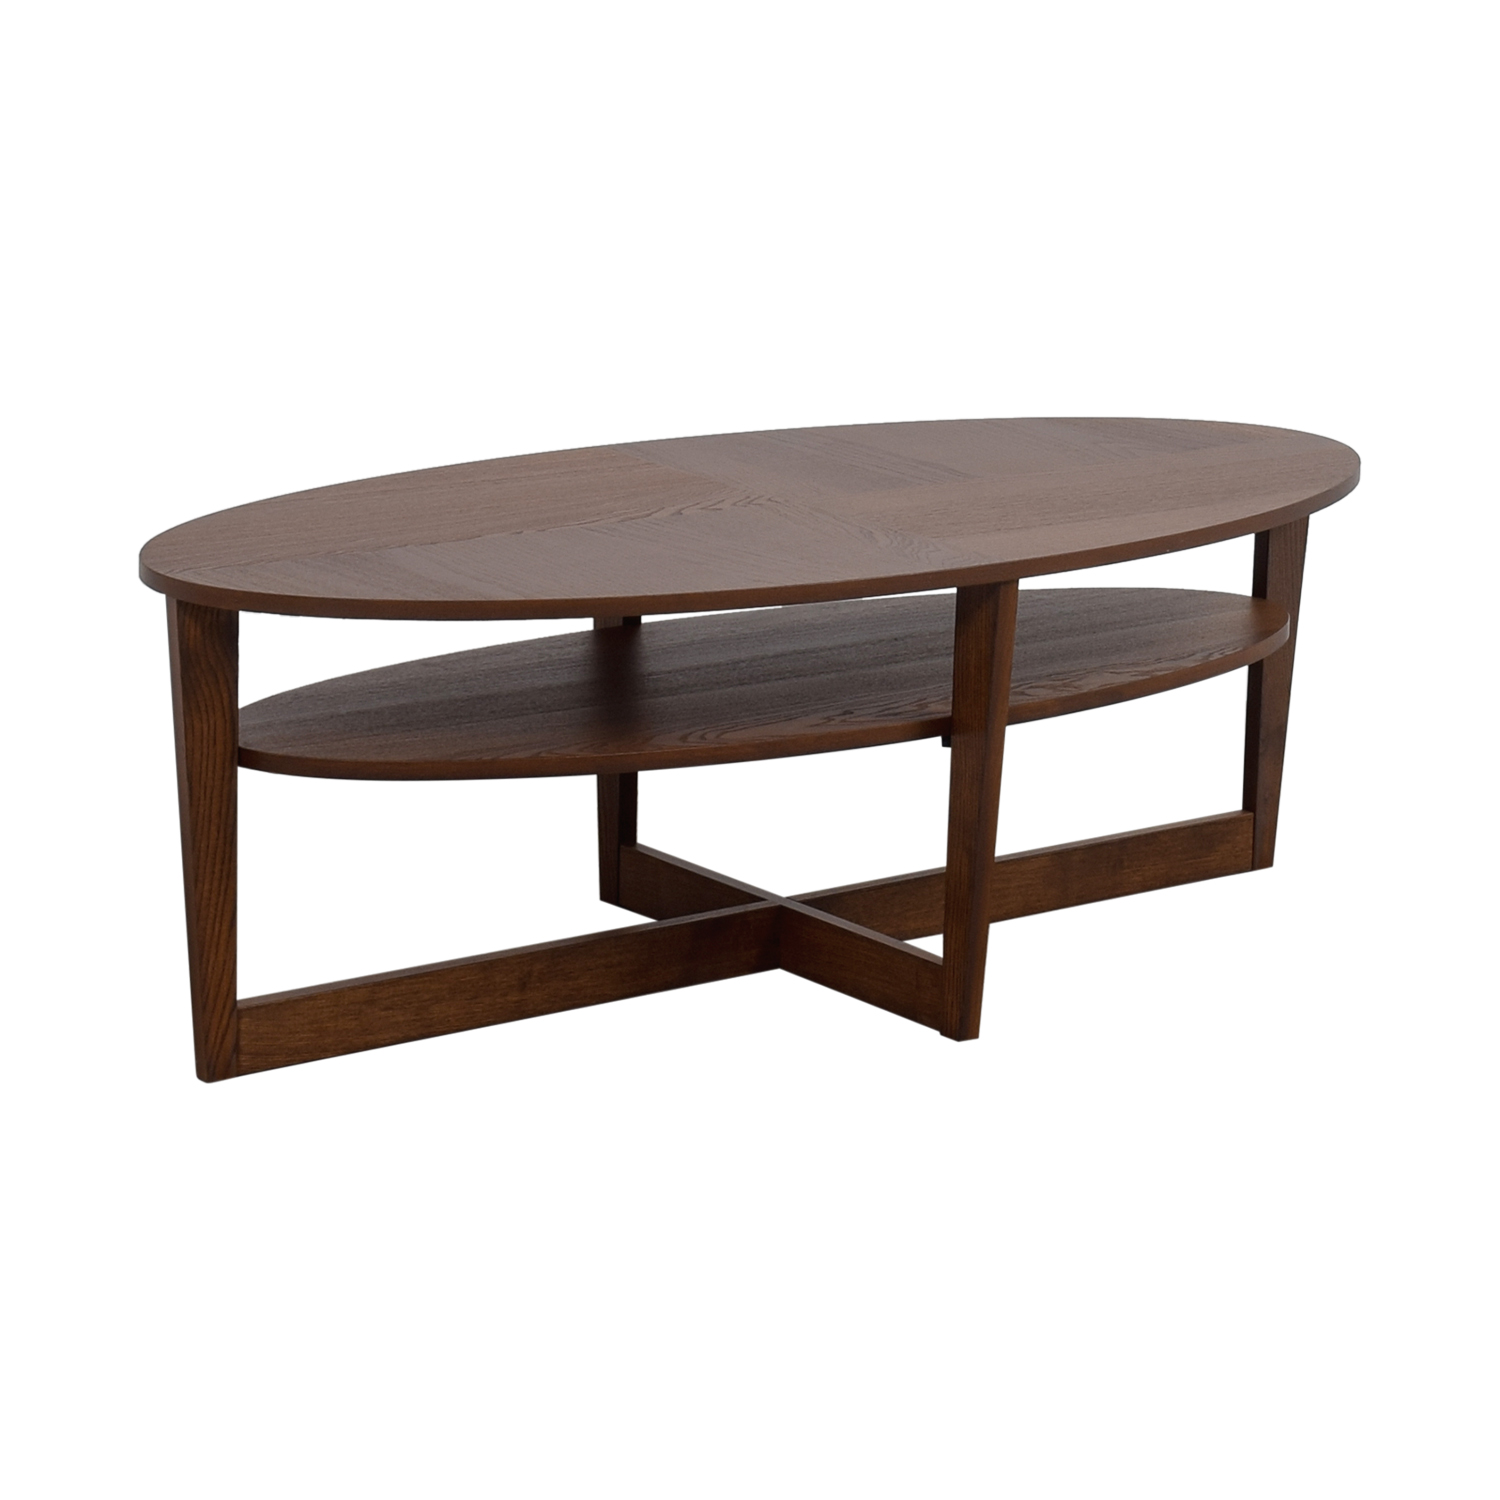 Oval Espresso Coffee Table: IKEA IKEA Oval Coffee Table / Tables